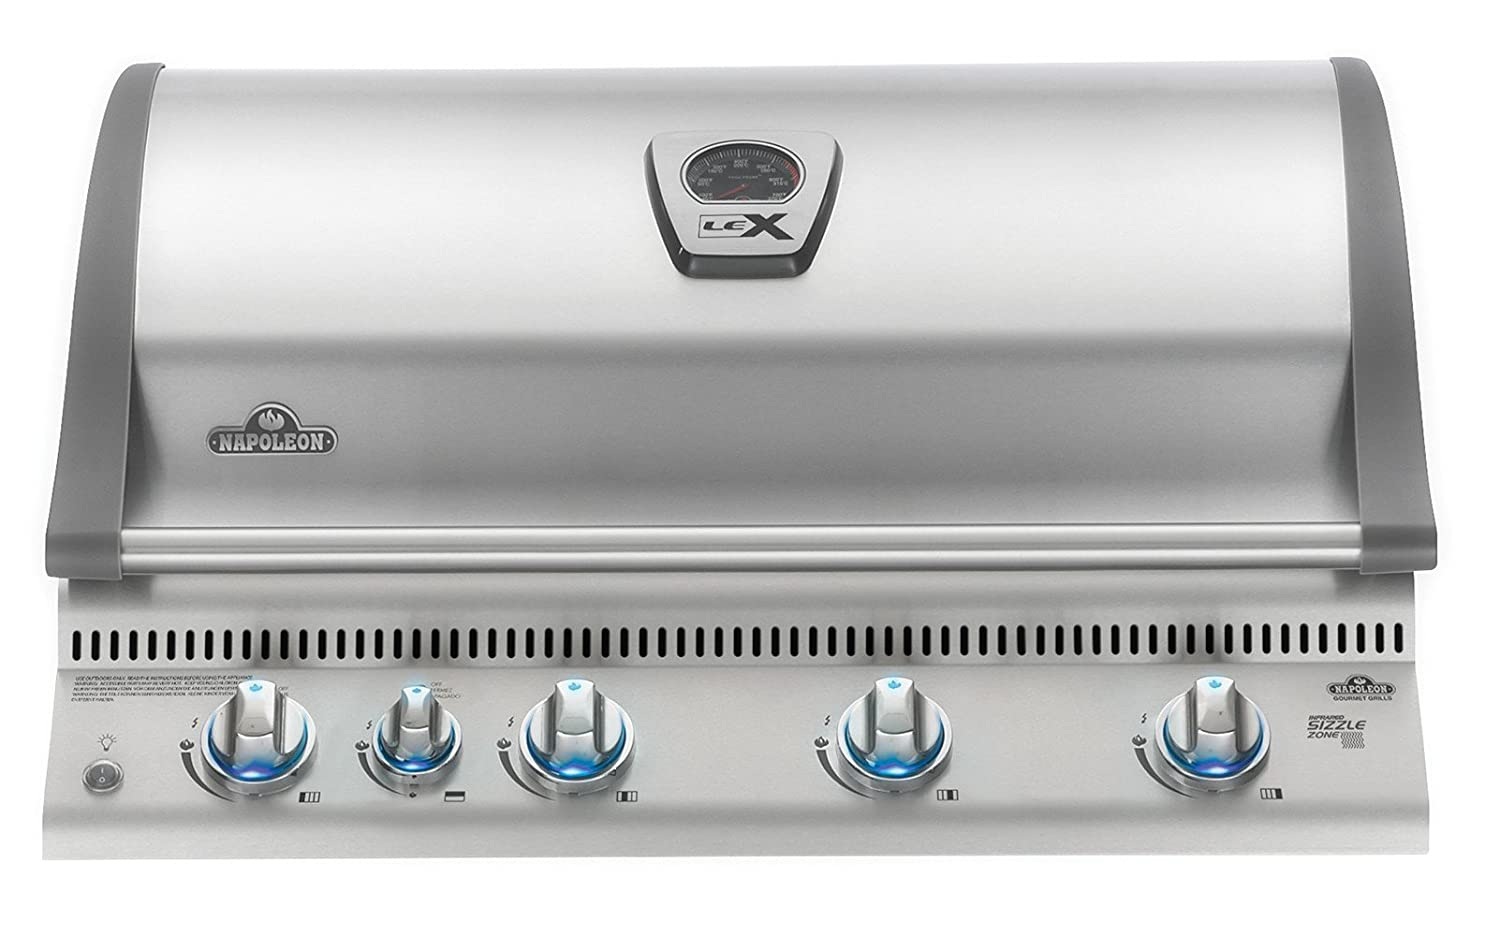 Best Built-in Grill 9